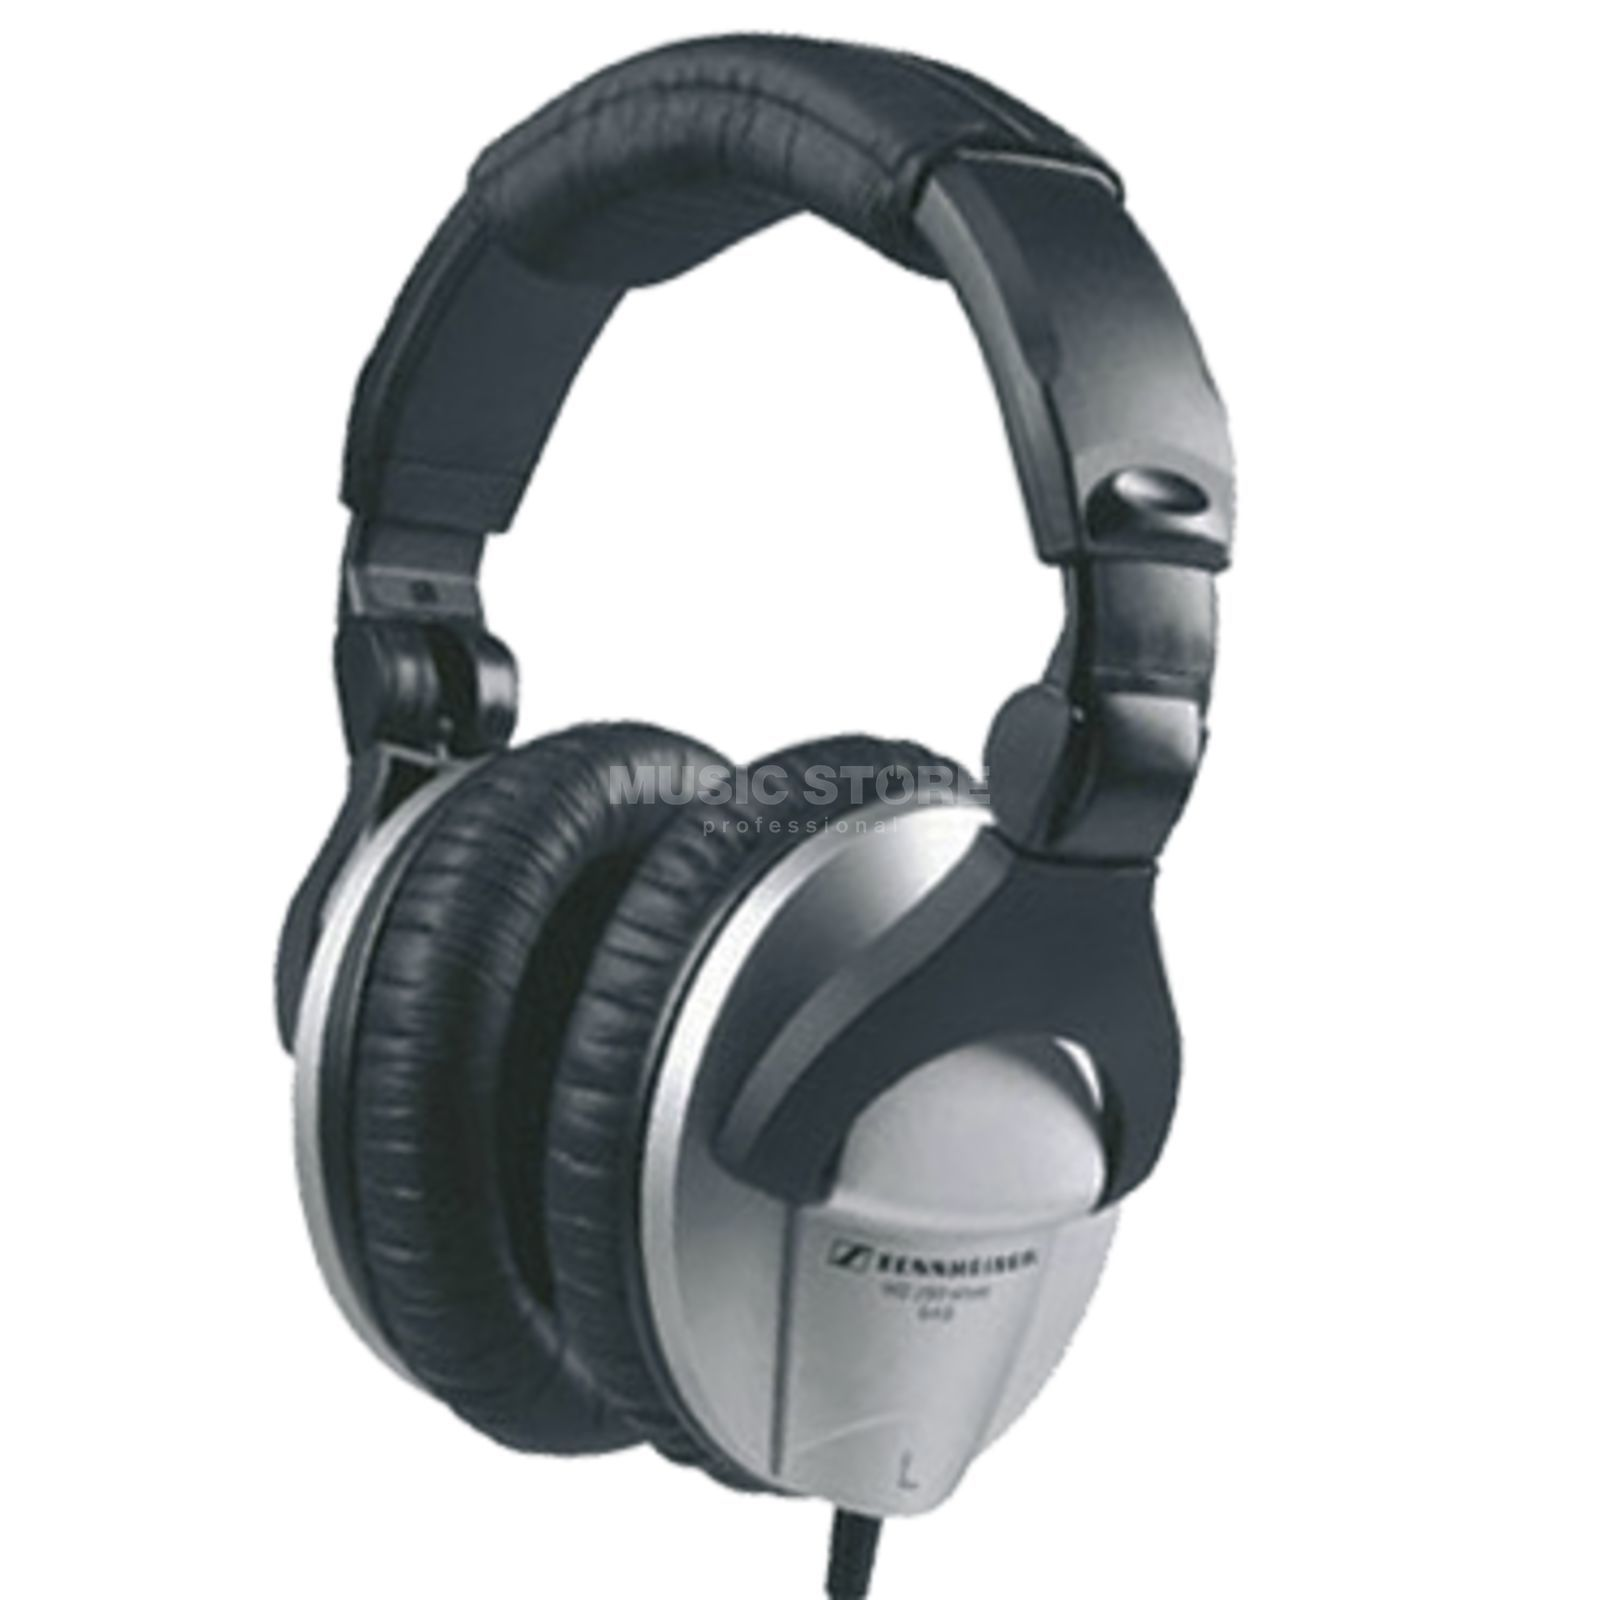 Sennheiser HD 280pro SI Silver Edition Headphone closed Produktbillede